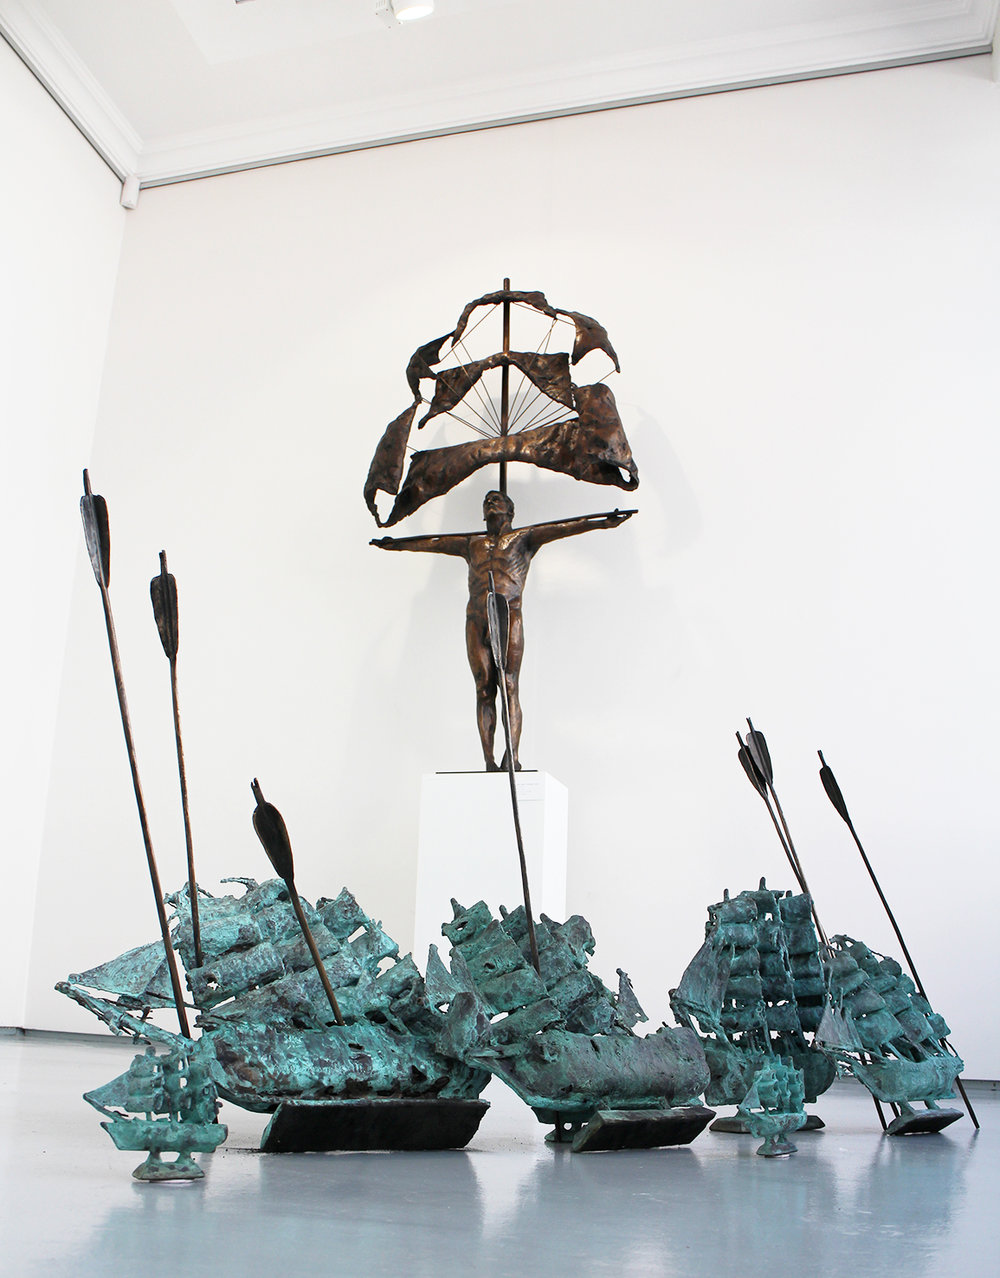 Adriaan Diedericks  'Corpus', 'Ships' & 'Arrows'  Bronze  Edition 01/08 / unique  172 x 90 x 25 cm / dimensions variable